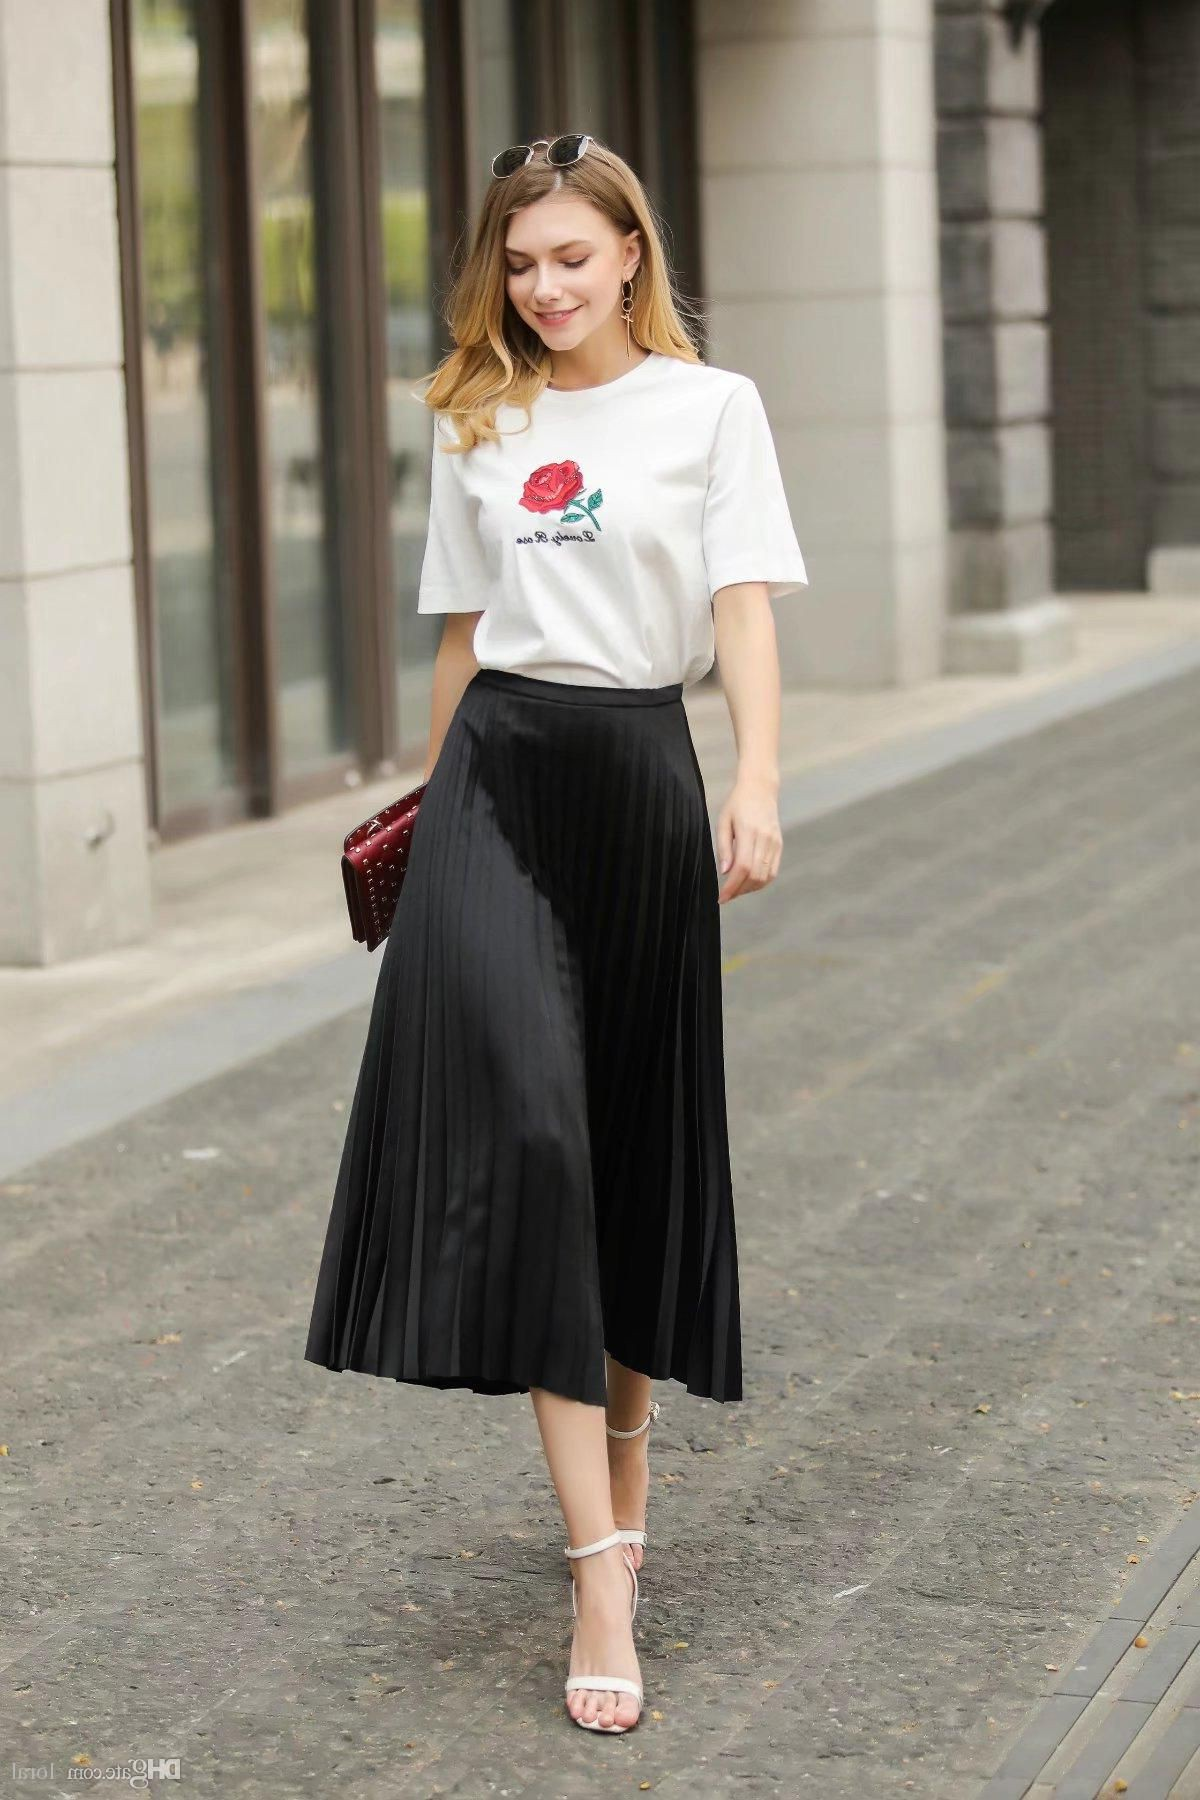 Midi-Pleated-Skirts-Inspiring-Outfit-Ideas-33